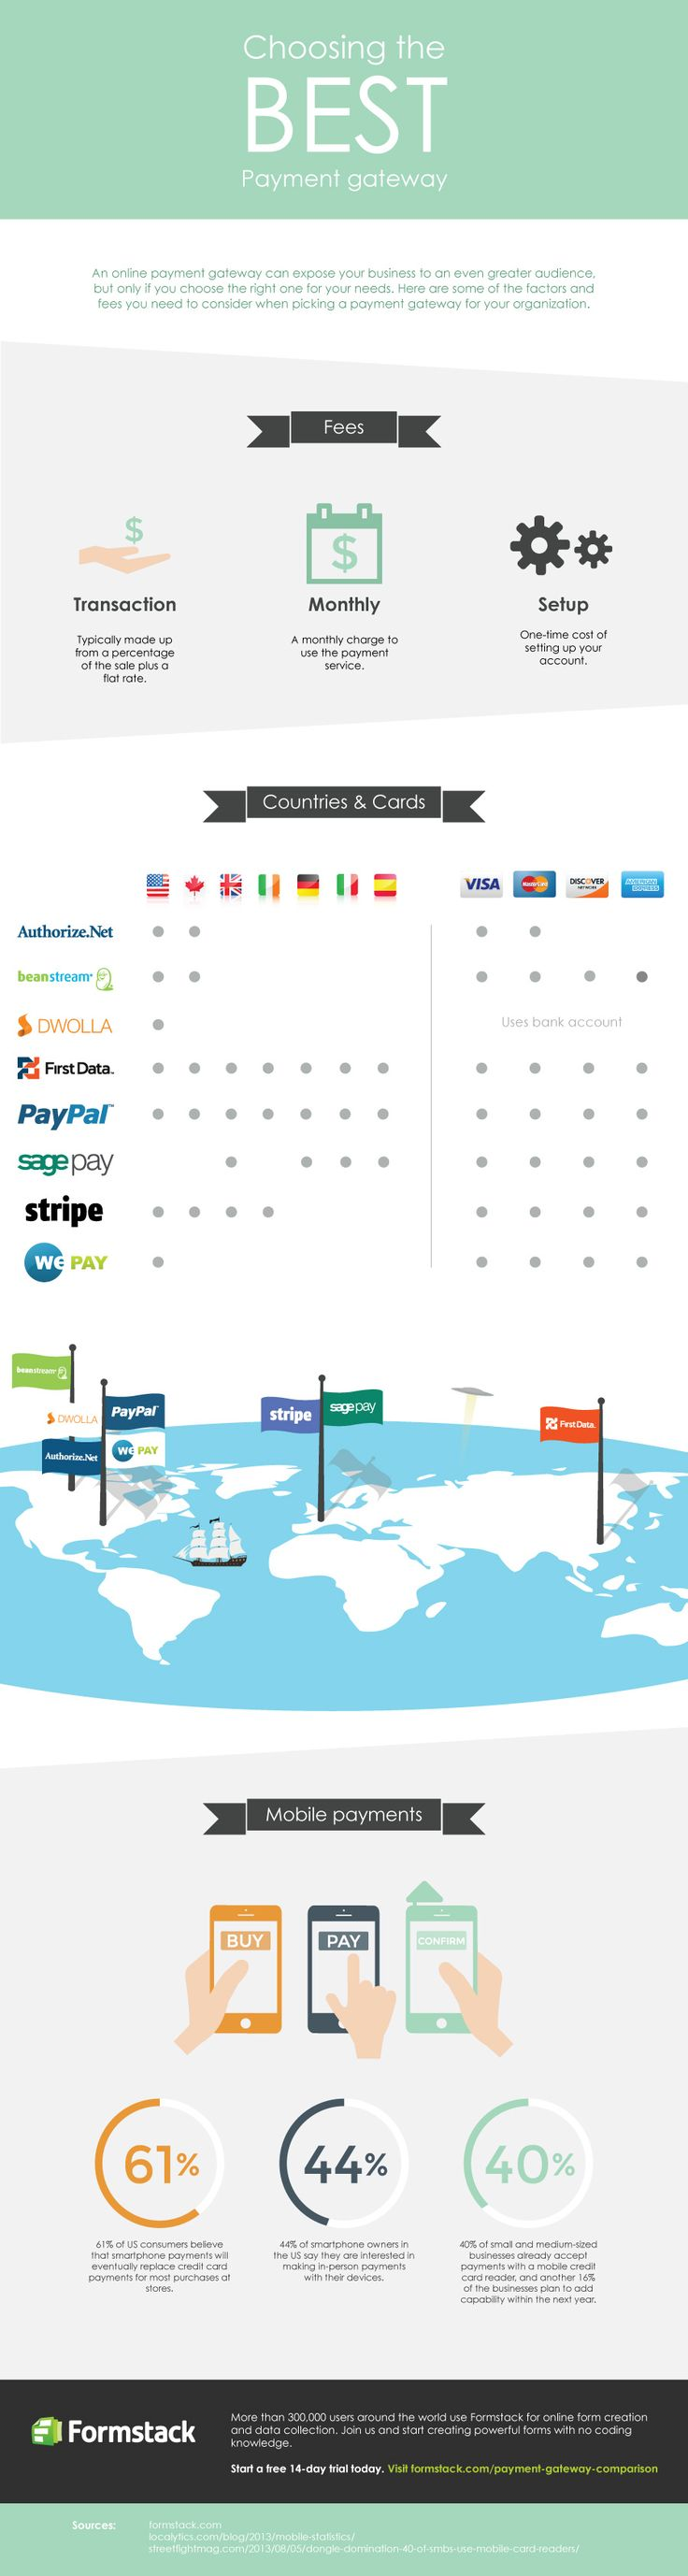 20 best Payment Gateway images on Pinterest | Credit cards, Design ...